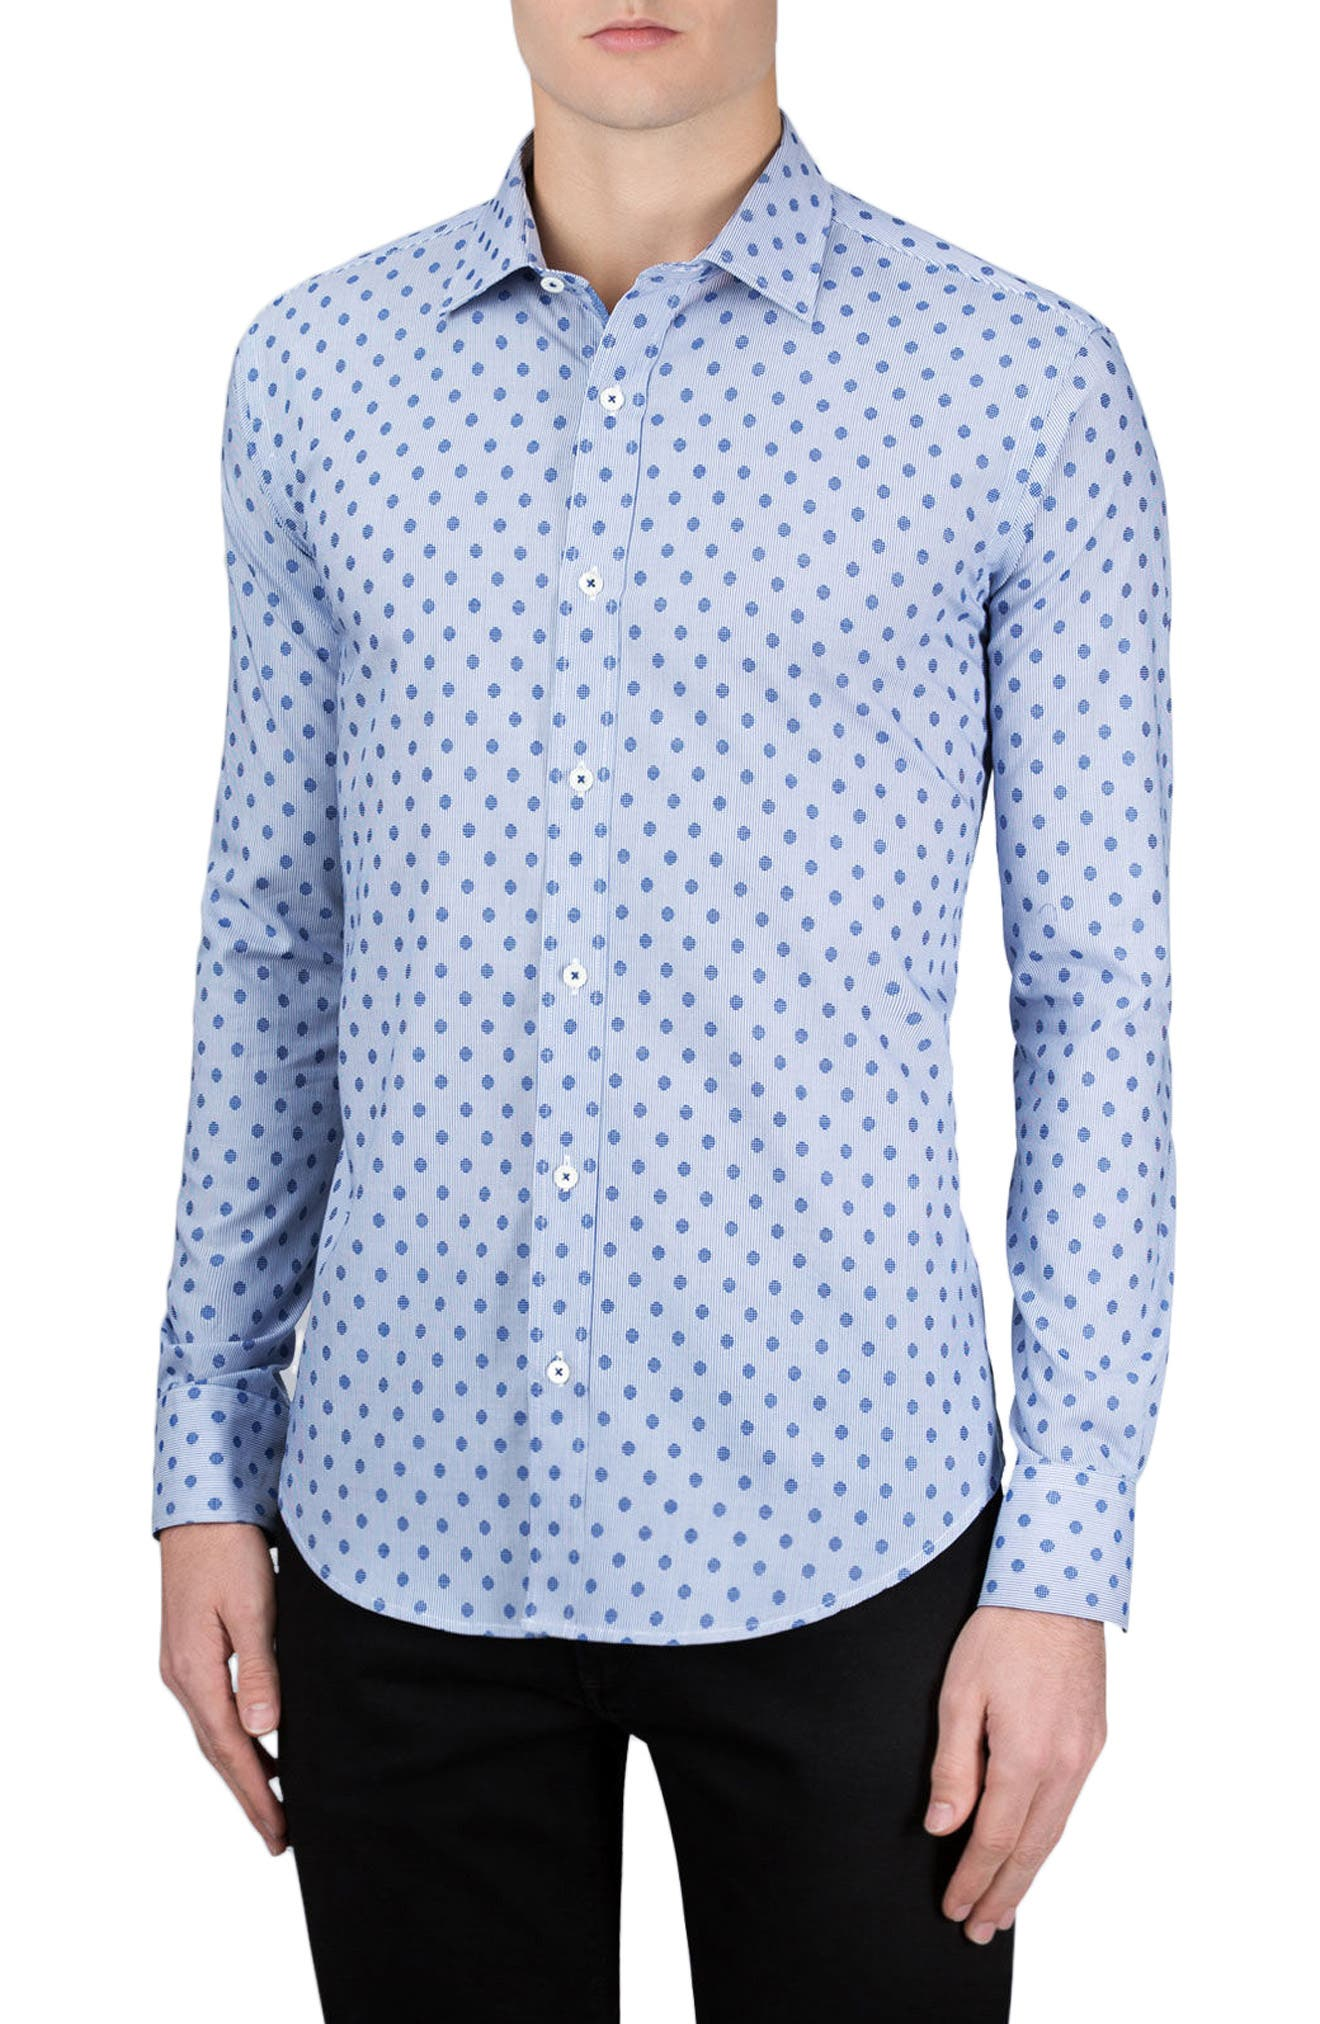 Alternate Image 1 Selected - Bugatchi Classic Fit Dotted Sport Shirt